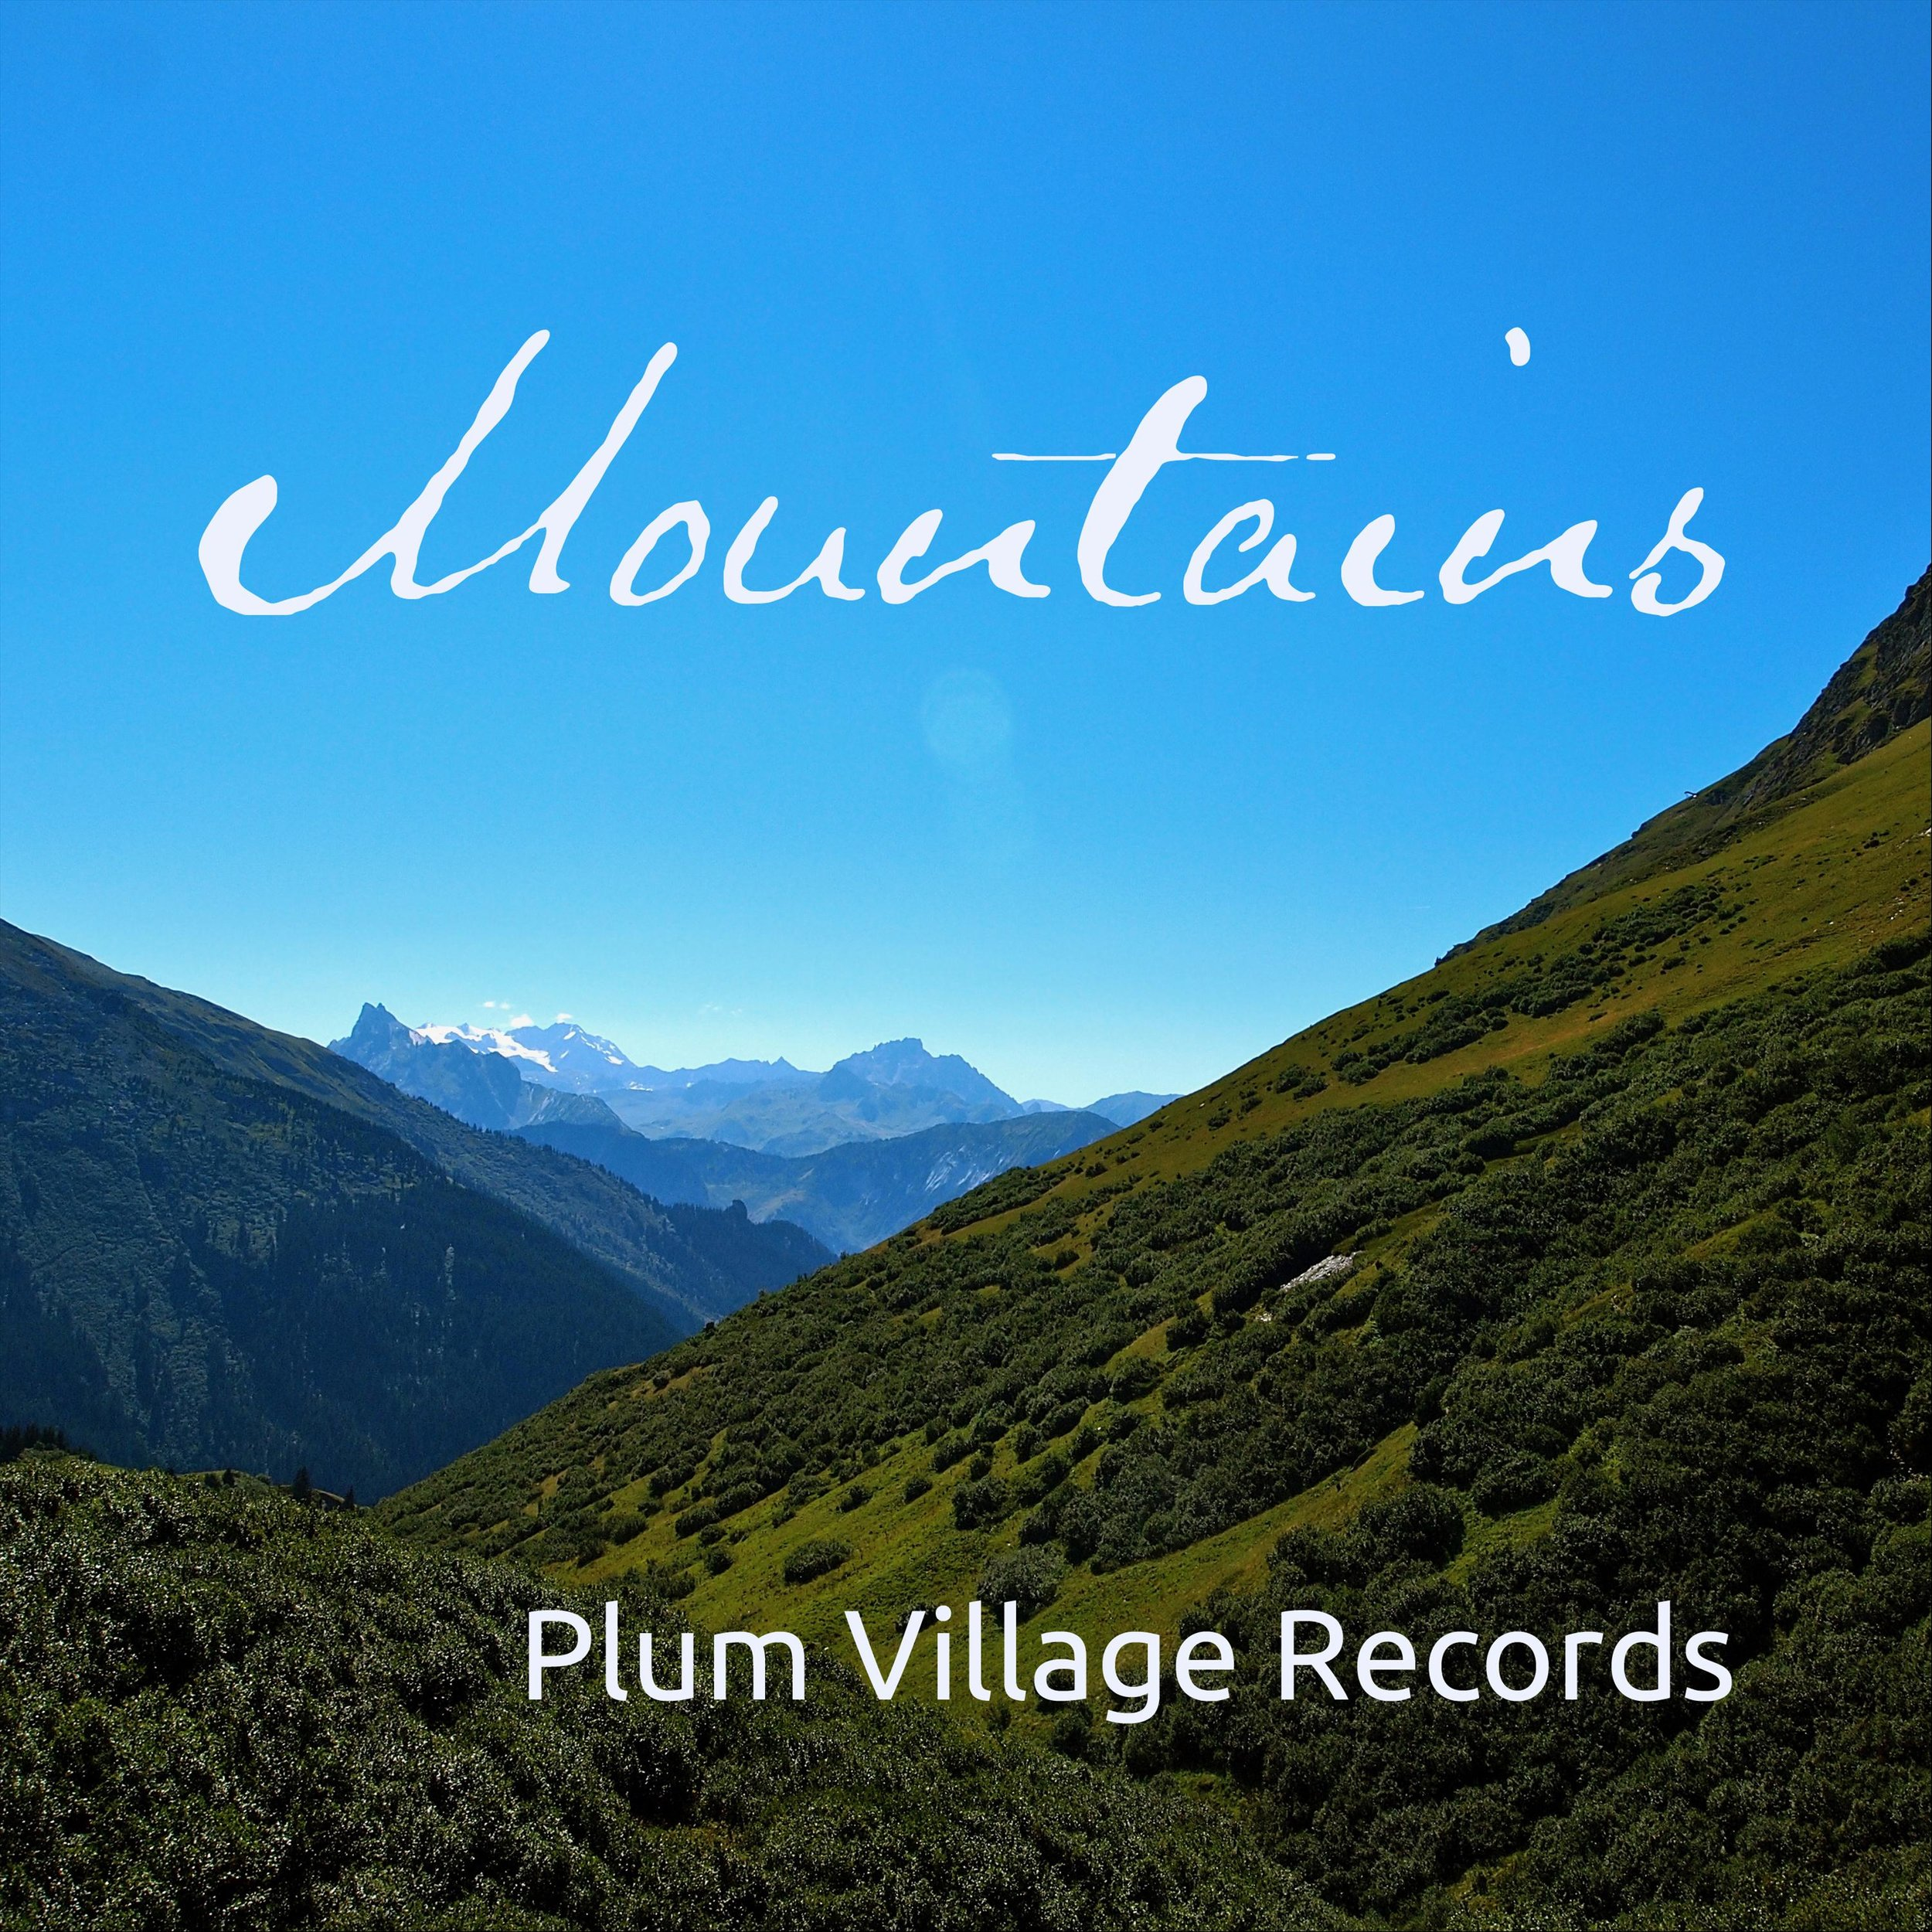 """Mountains - Mountains is a collections of songs from the many-fold Sangha in a variety of styles including """"Joy,"""" """"I Love Nature,"""" and """"Peacefully Free."""